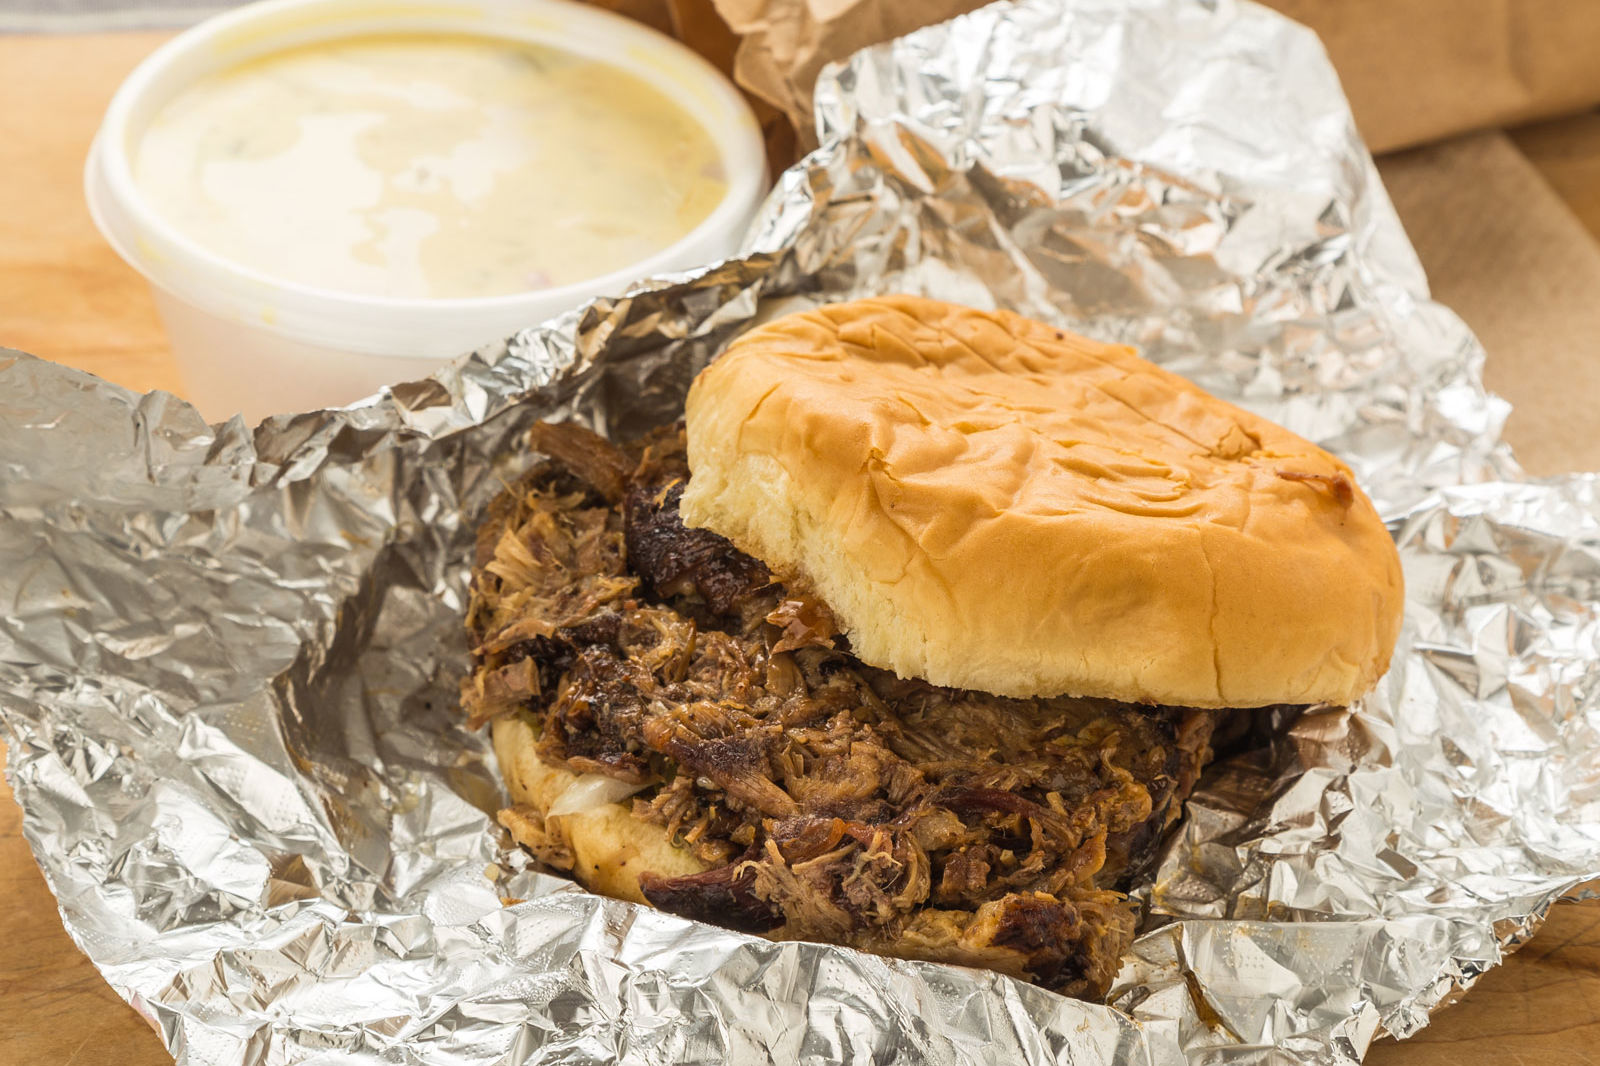 The Brisket at This Gas Station in Texas Is Probably Better Than the Barbecue Where You Live